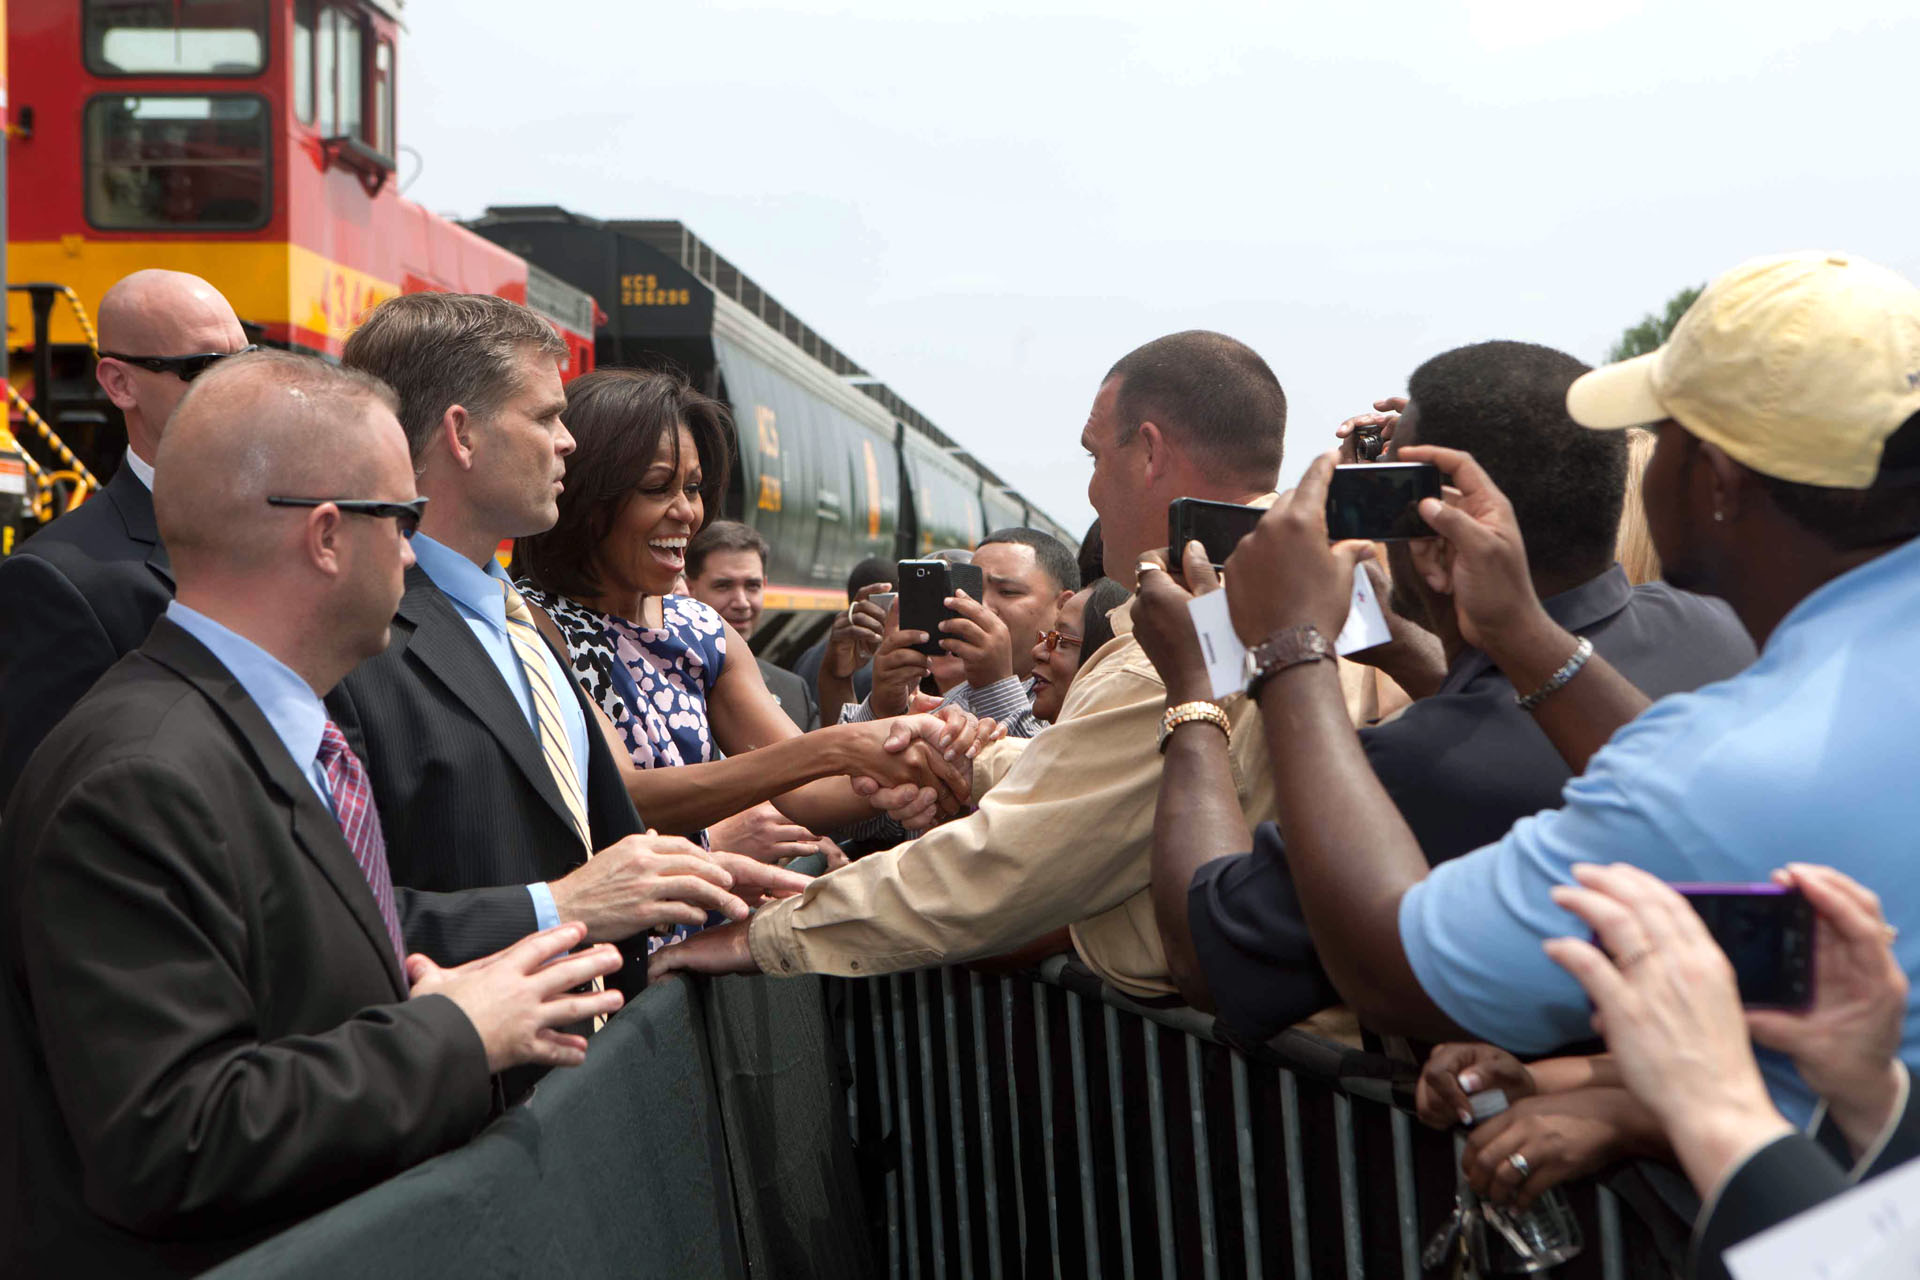 First Lady Michelle Obama greets people in the crowd at Kansas City Southern Railroad